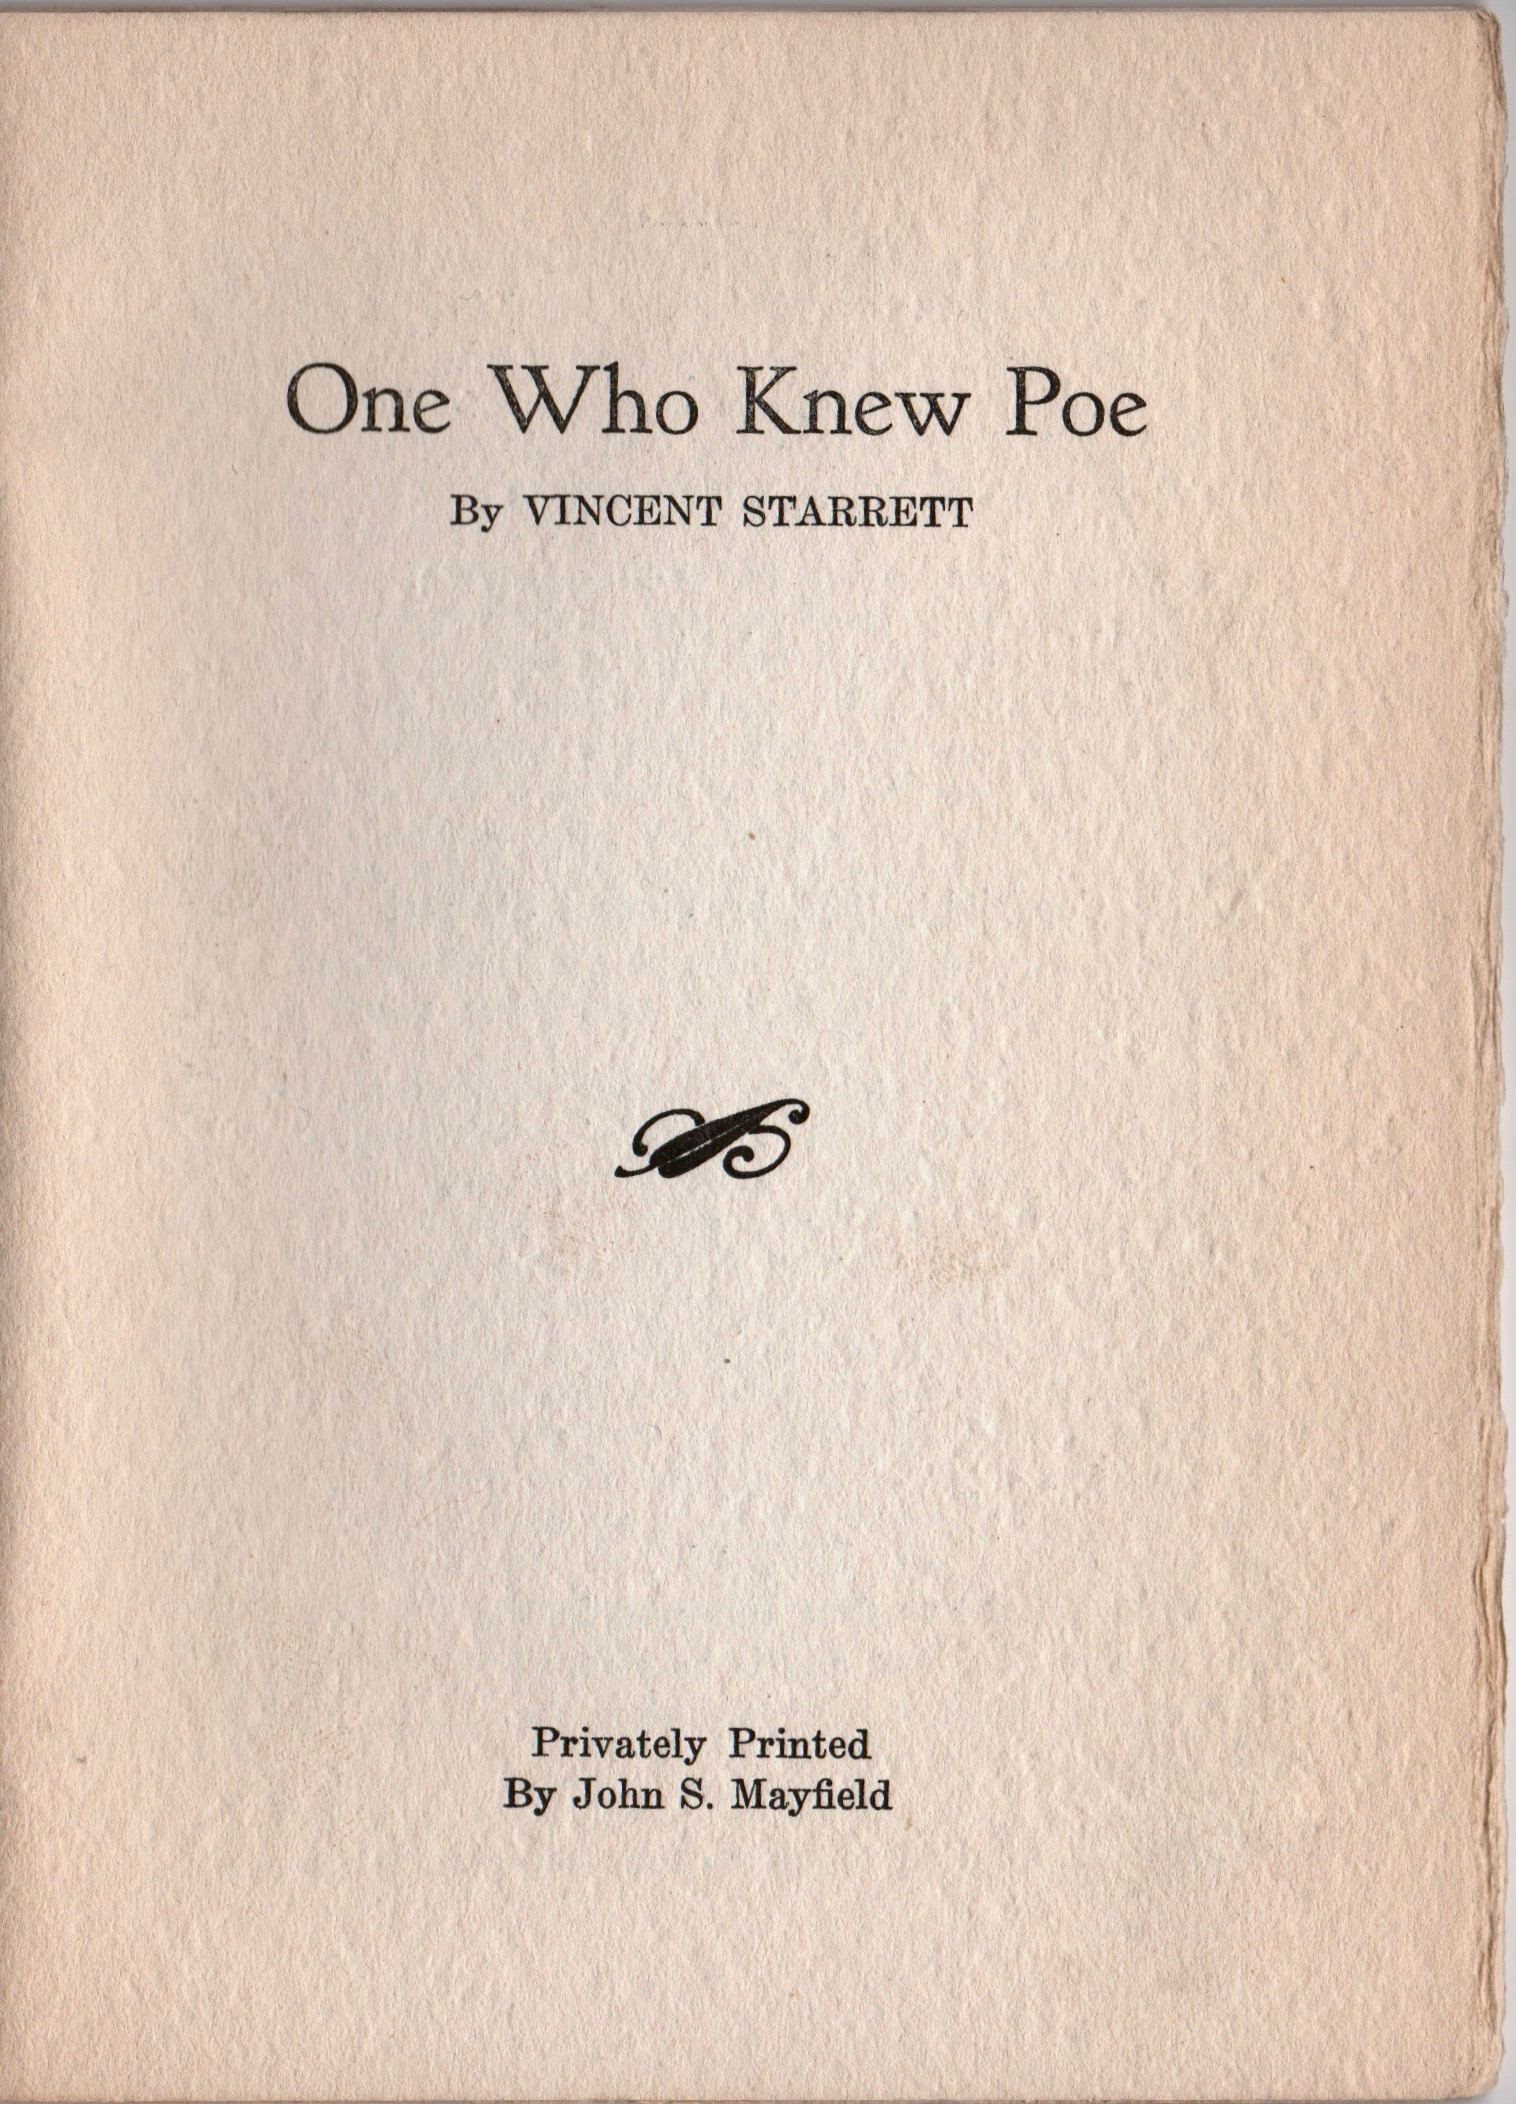 The title page, showing that the booklet was printed by  John S. Mayfield,  a rare book collector whose papers are now at  Georgetown University.